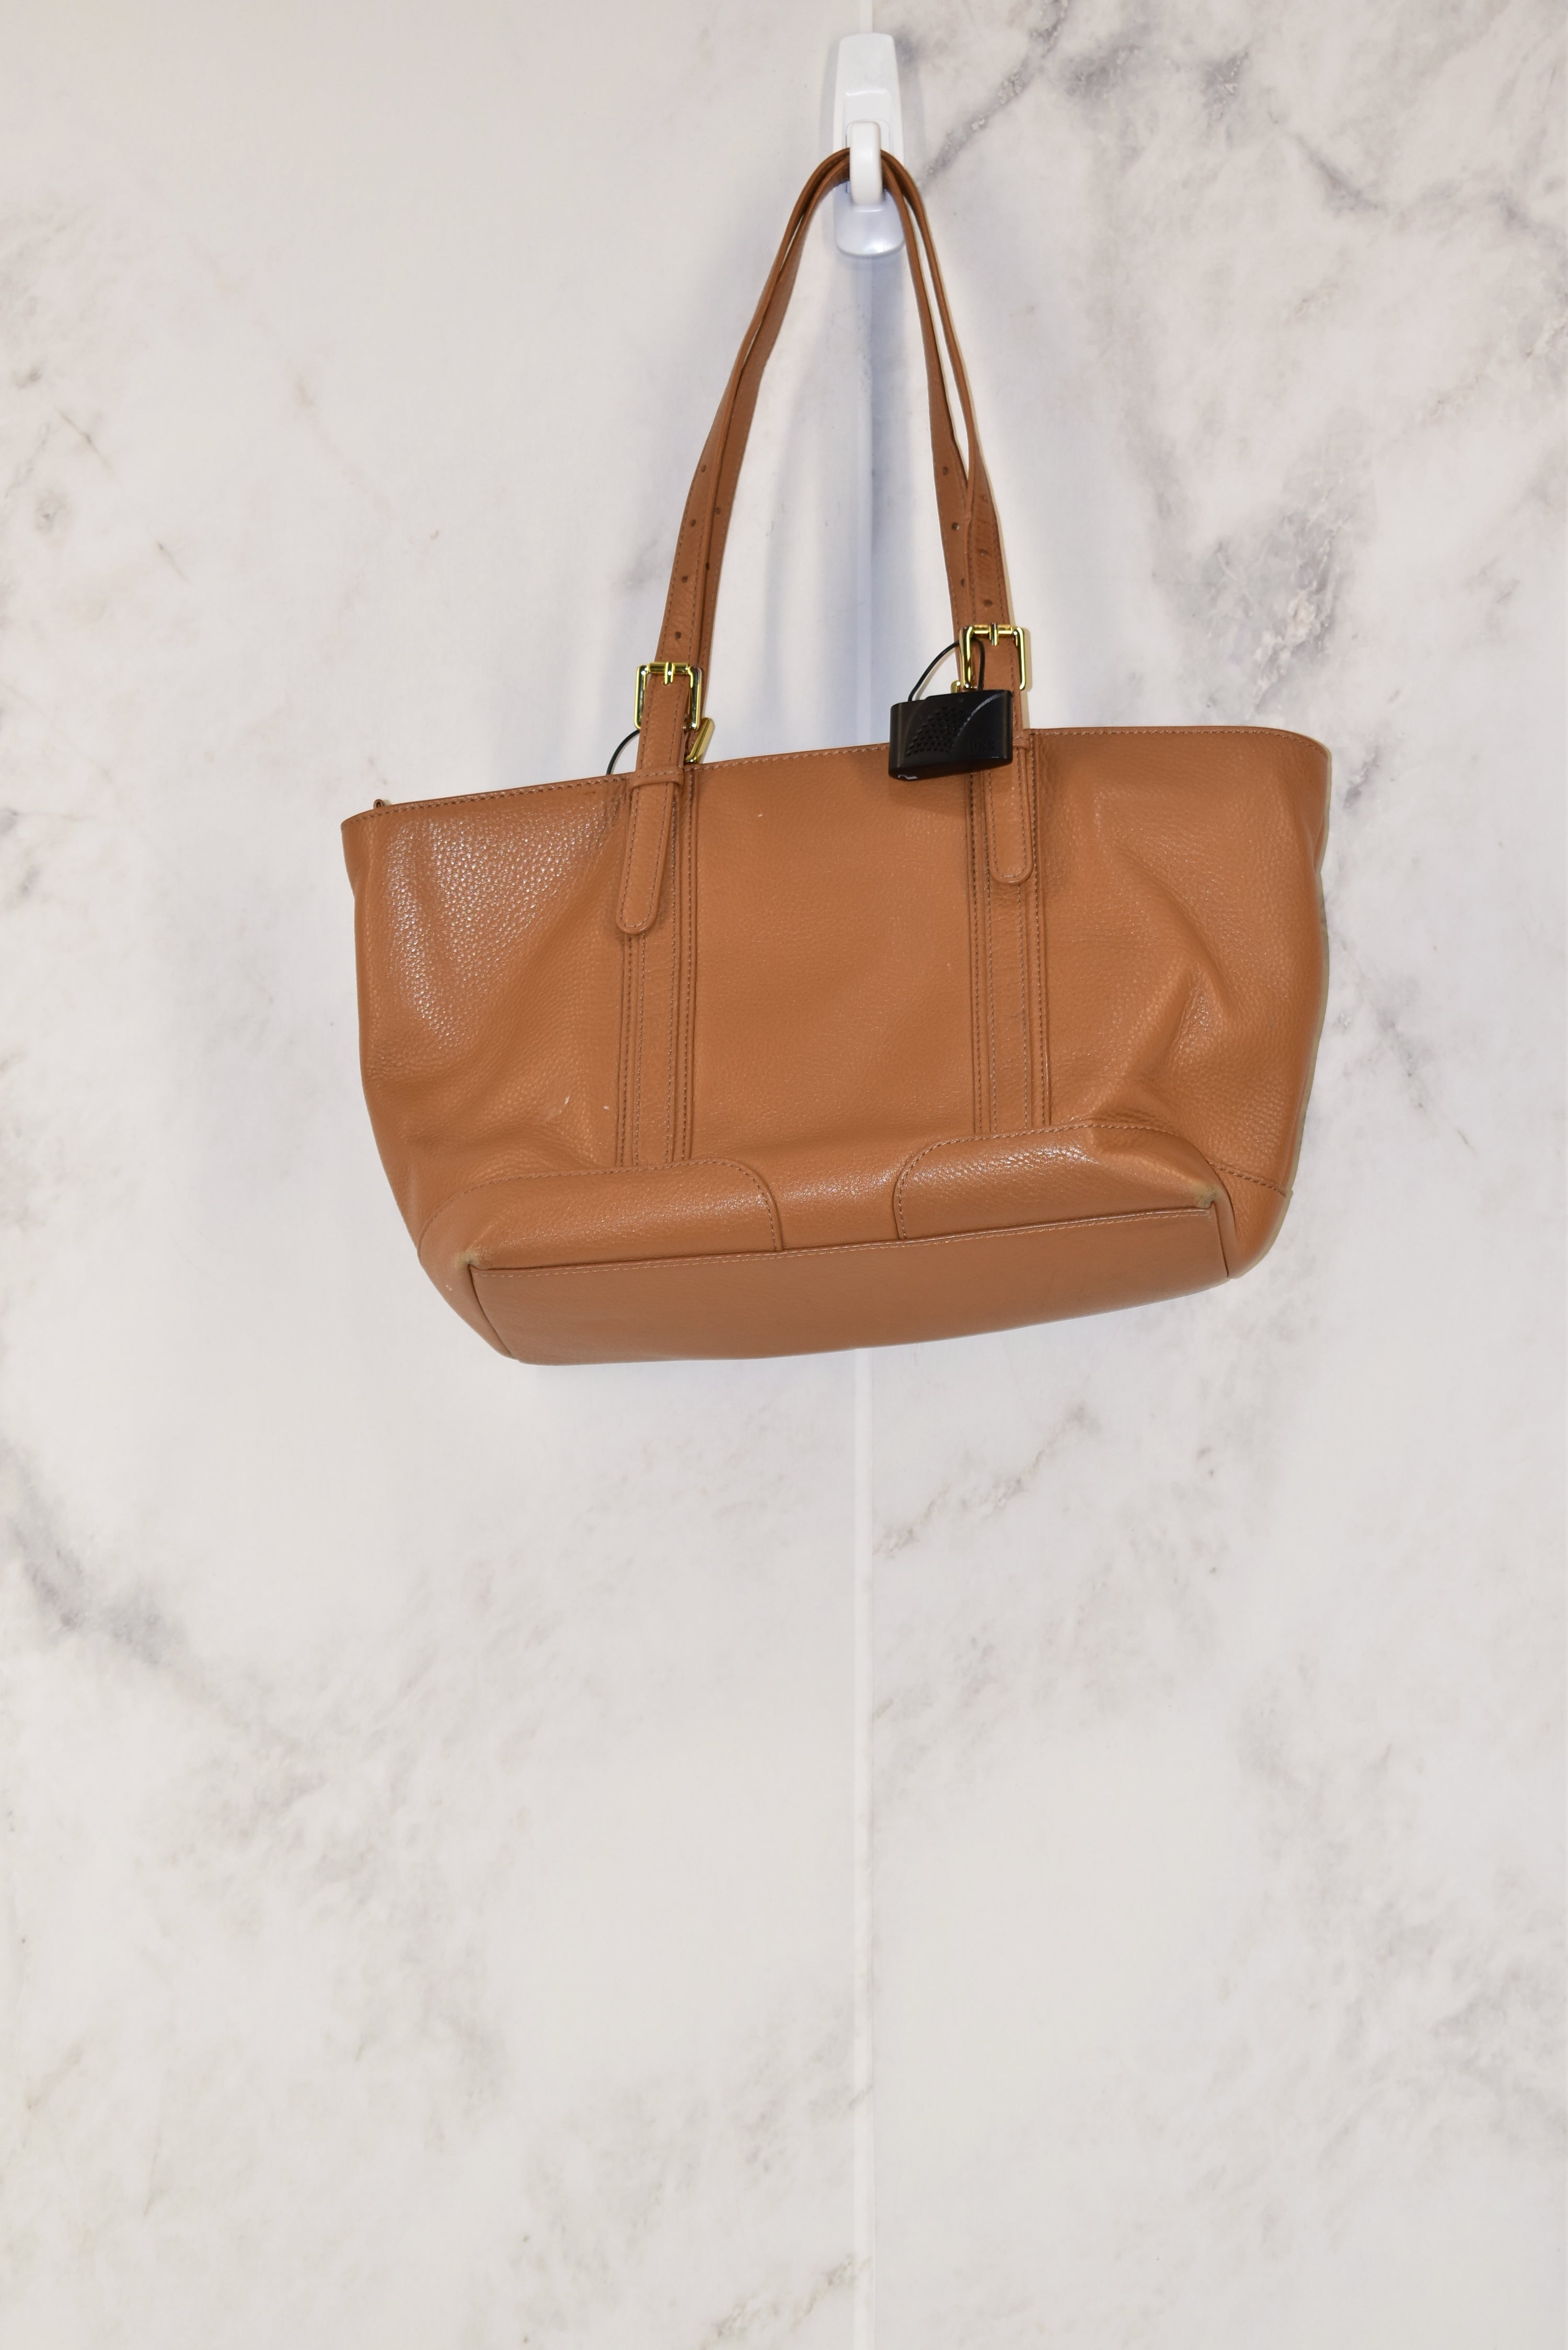 Photo #1 - BRAND: TORY BURCH<BR>STYLE: HANDBAG DESIGNER<BR>COLOR: CAMEL<BR>SIZE: MEDIUM<BR>SKU: 186-186213-2779